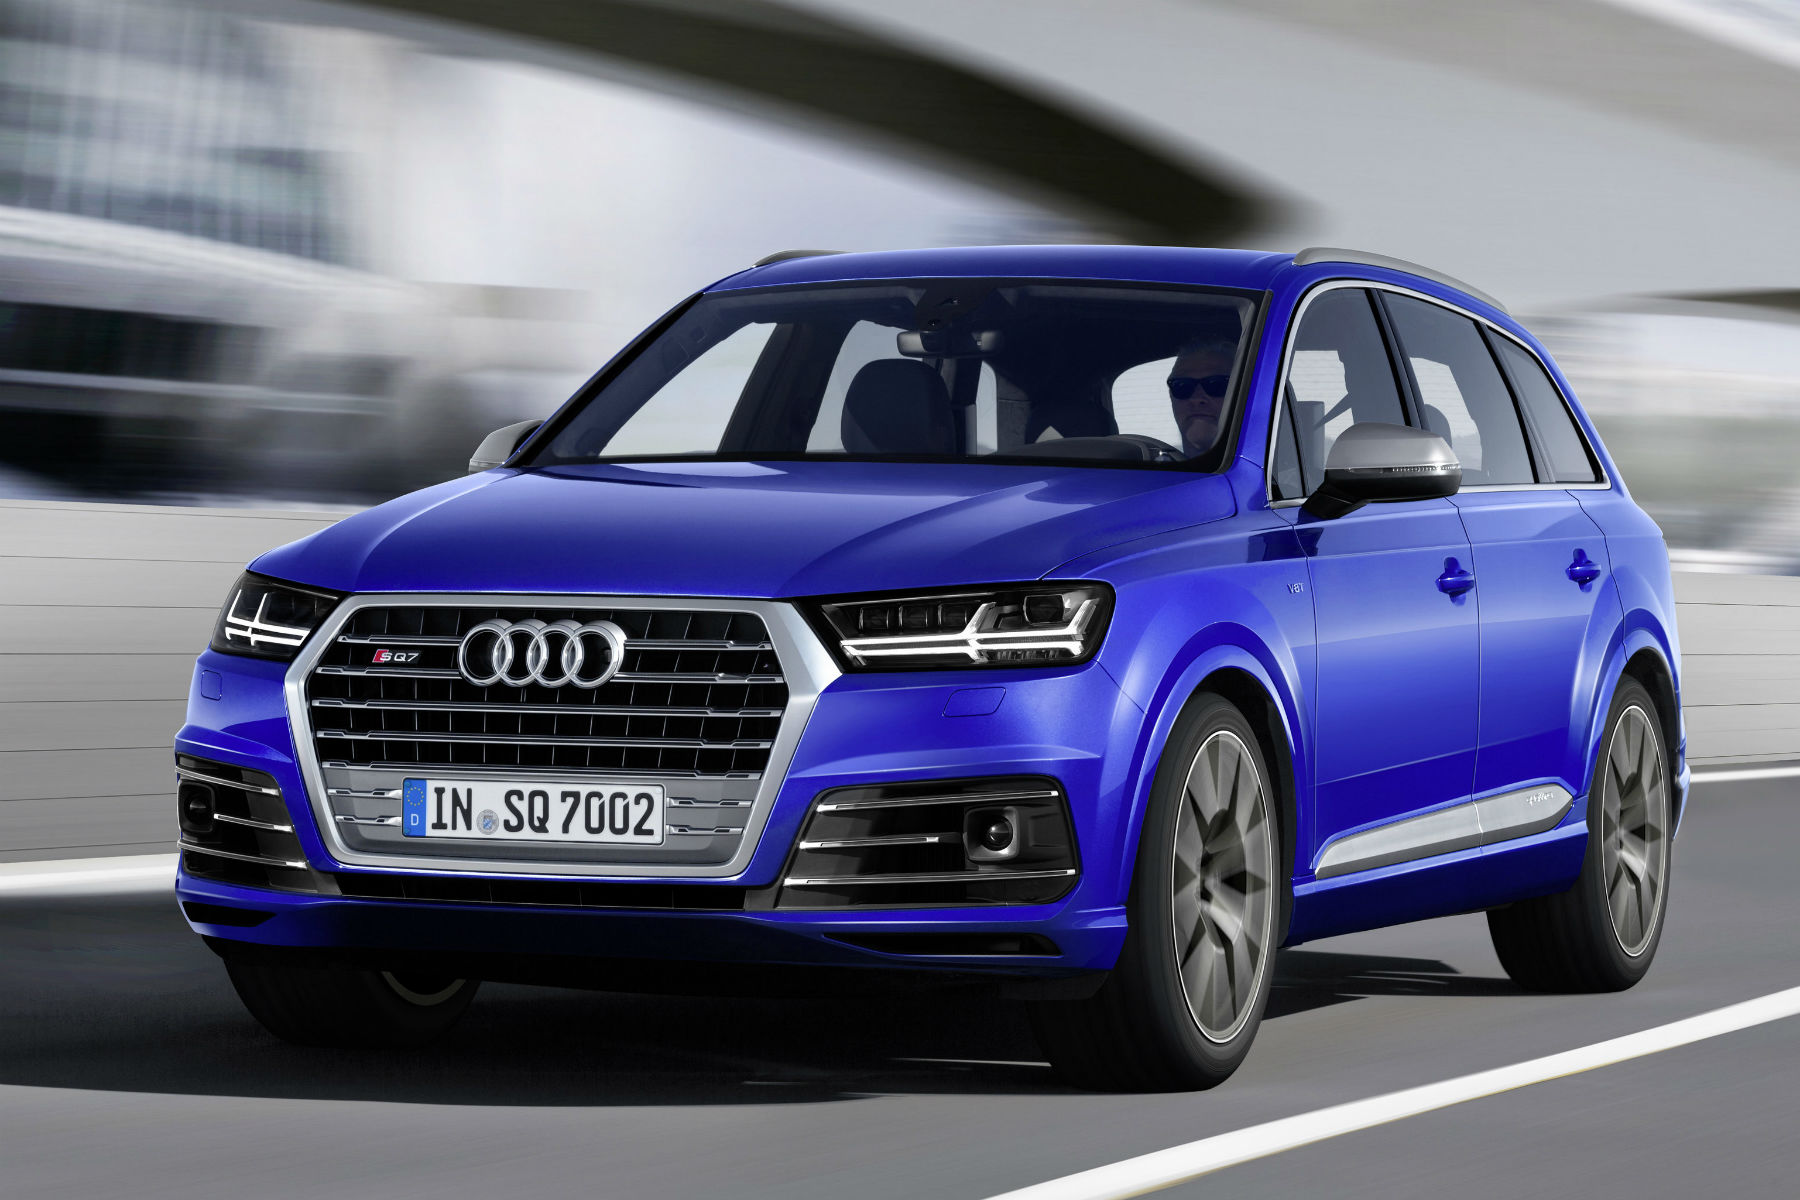 Hot Audi SQ7 revealed: the world's most powerful diesel SUV